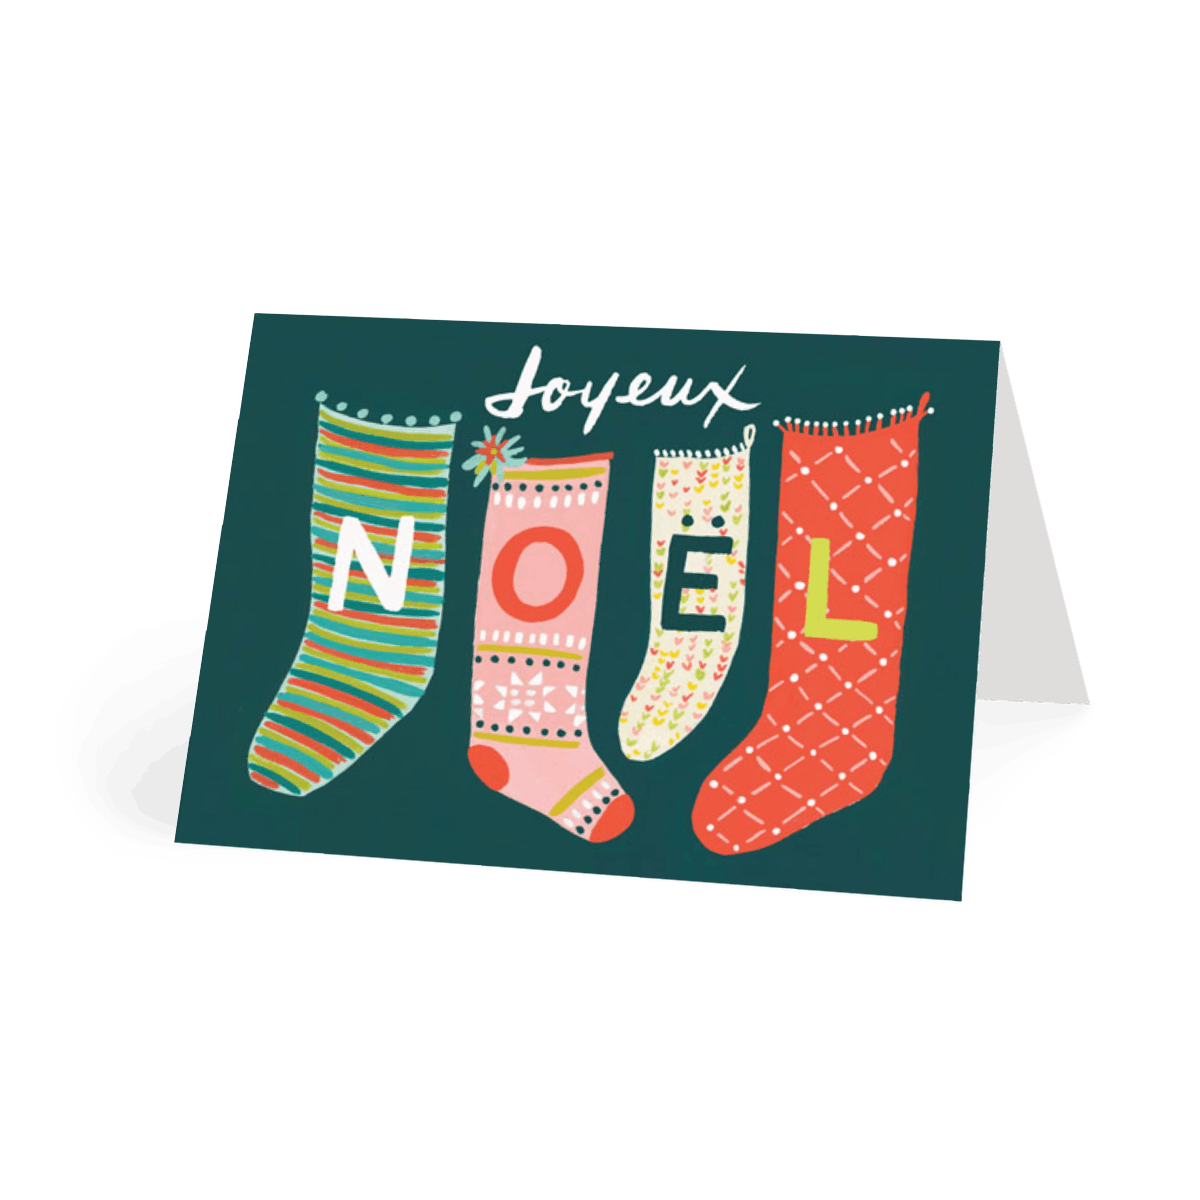 Https%3a%2f%2fwww.papier.com%2fproduct image%2f8411%2f14%2fchristmas stockings 2086 front 1466437007.png?ixlib=rb 1.1